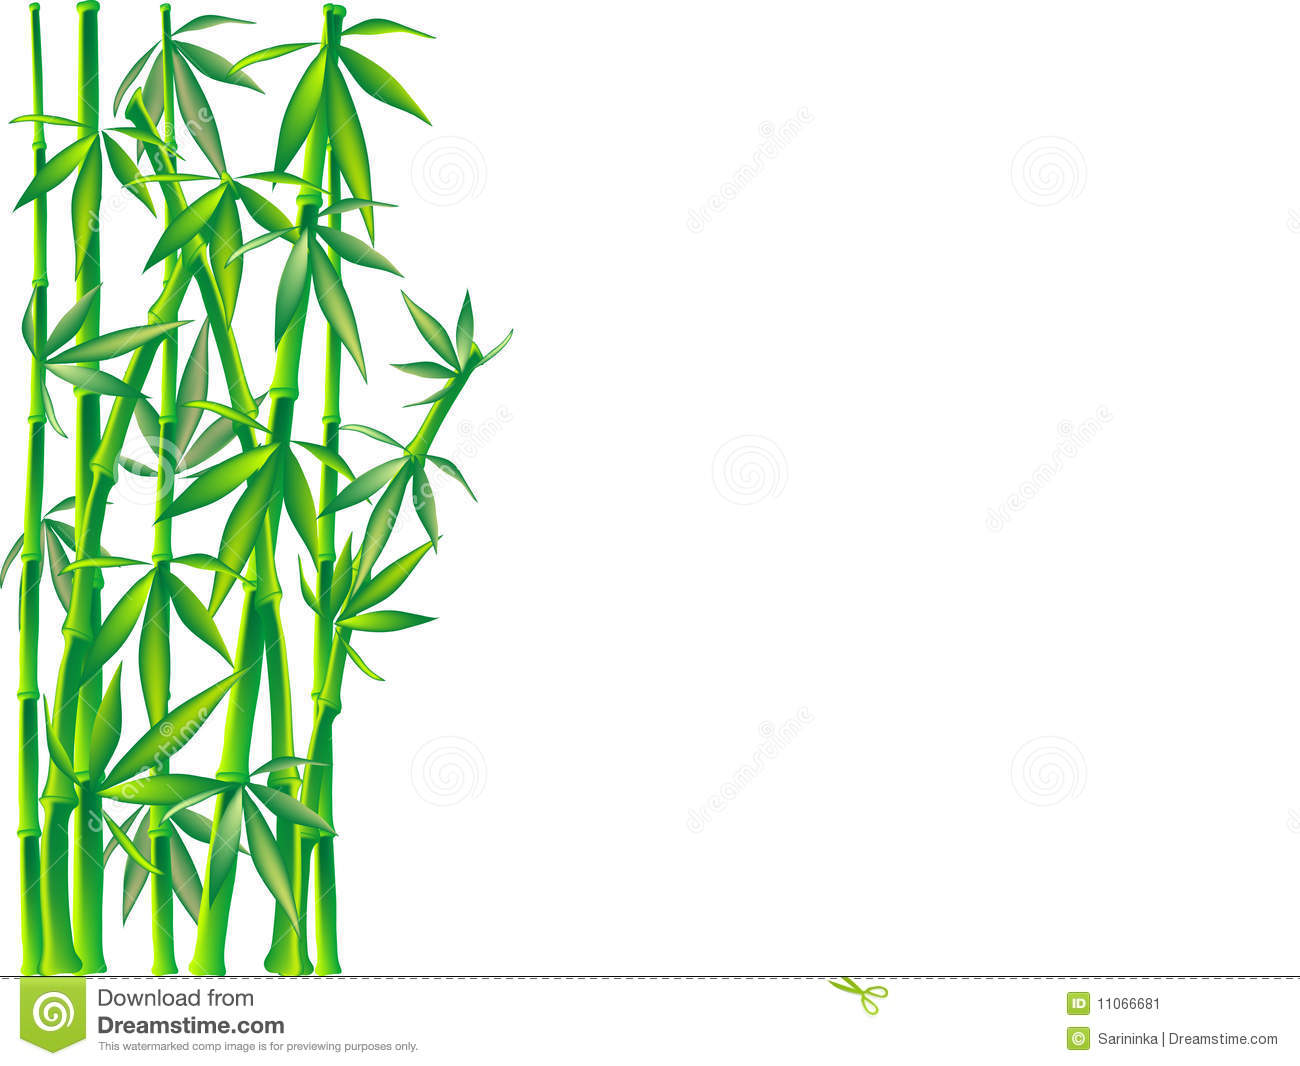 bamboo clipart clipart panda free clipart images rh clipartpanda com panda bamboo clipart bamboo forest clipart